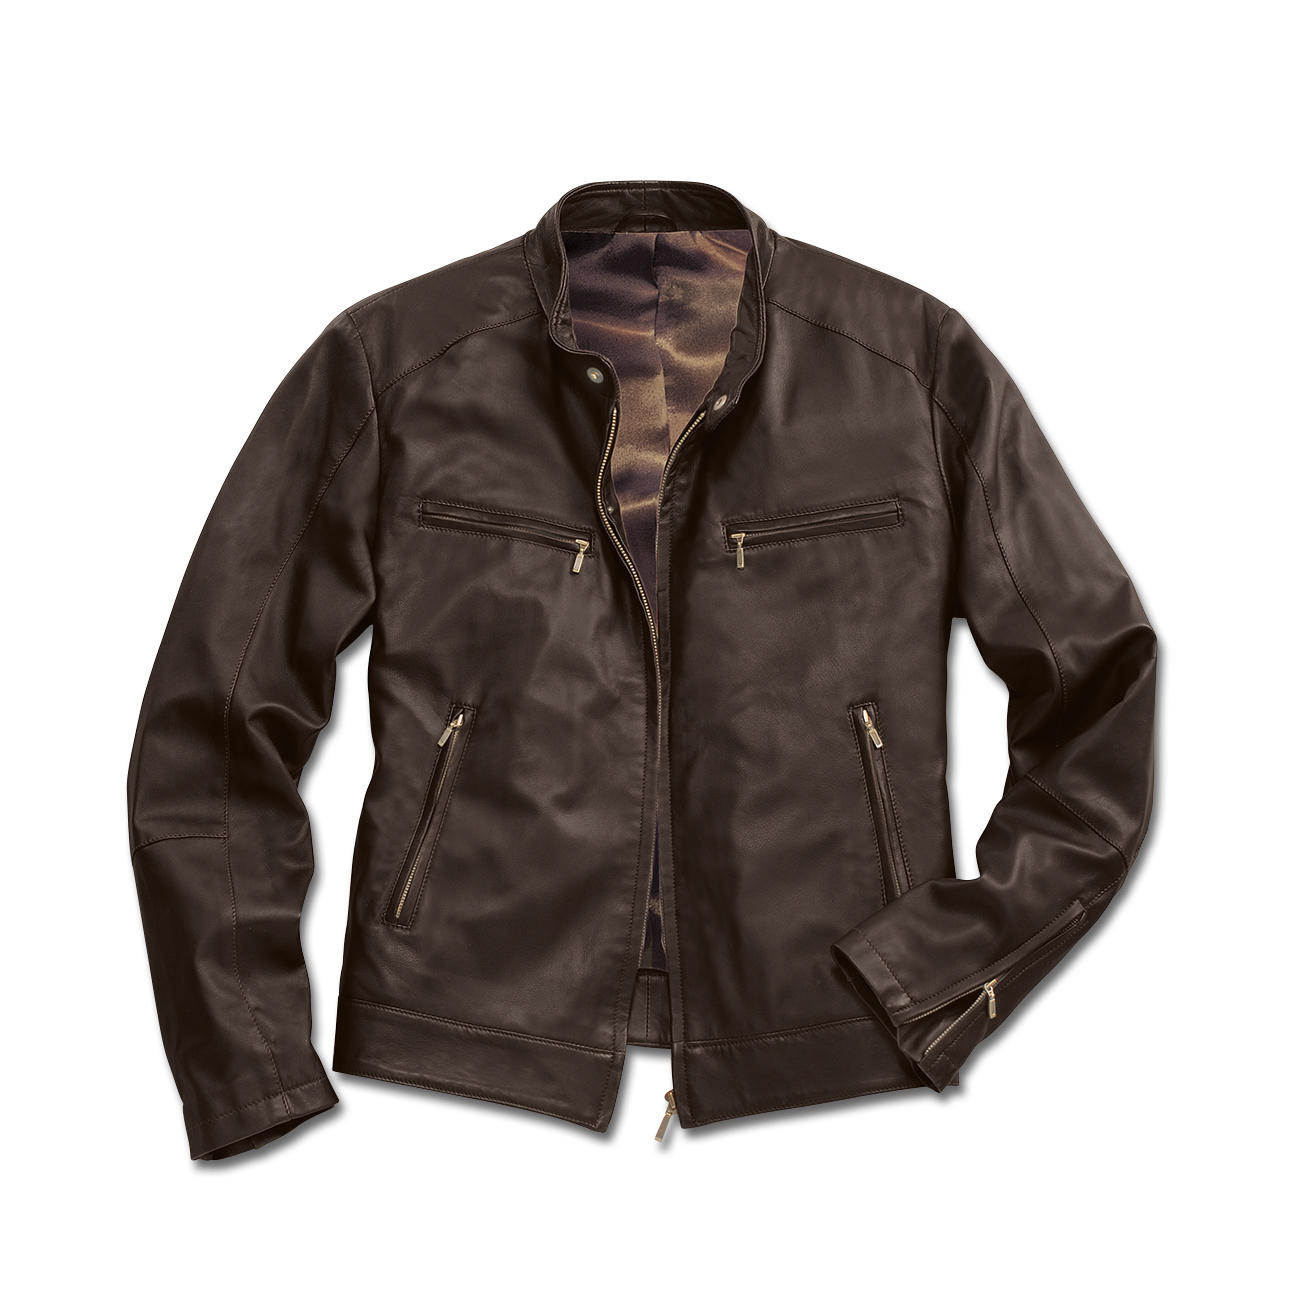 Image result for 28. A Leather Jacket